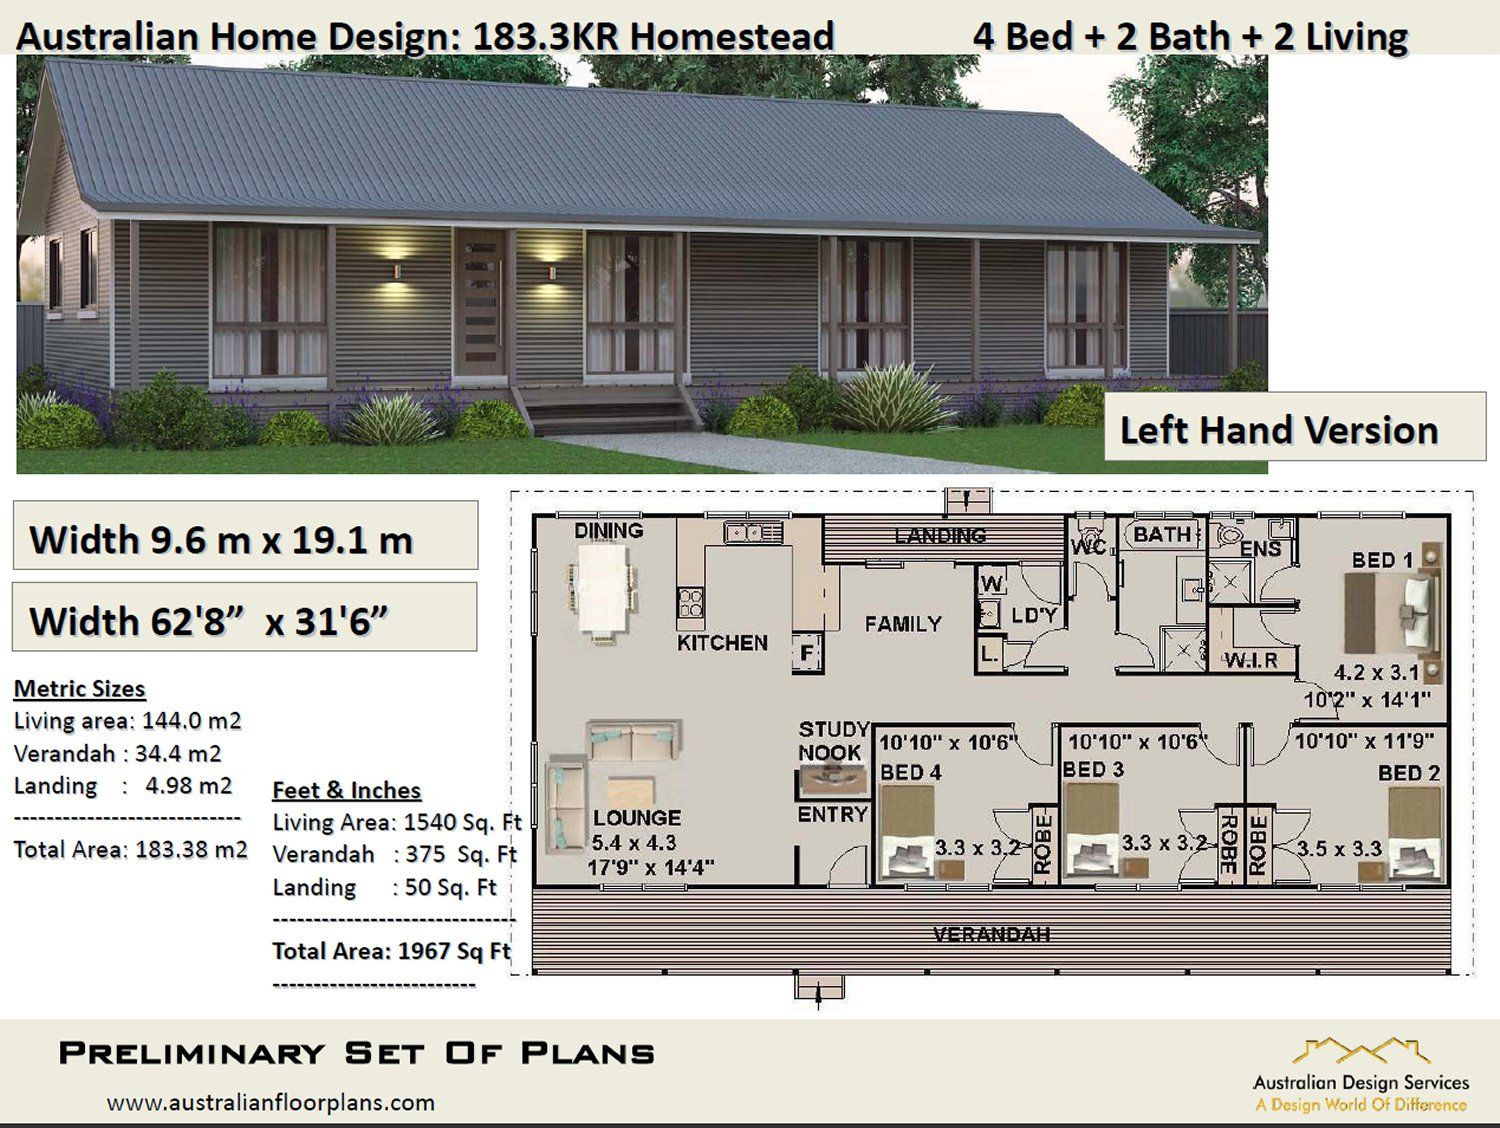 Country Style 4 Bed Plans 183m2 1967 Sq Ft 4 Bed House Etsy House Plans For Sale Modern House Plans House Plans Australia